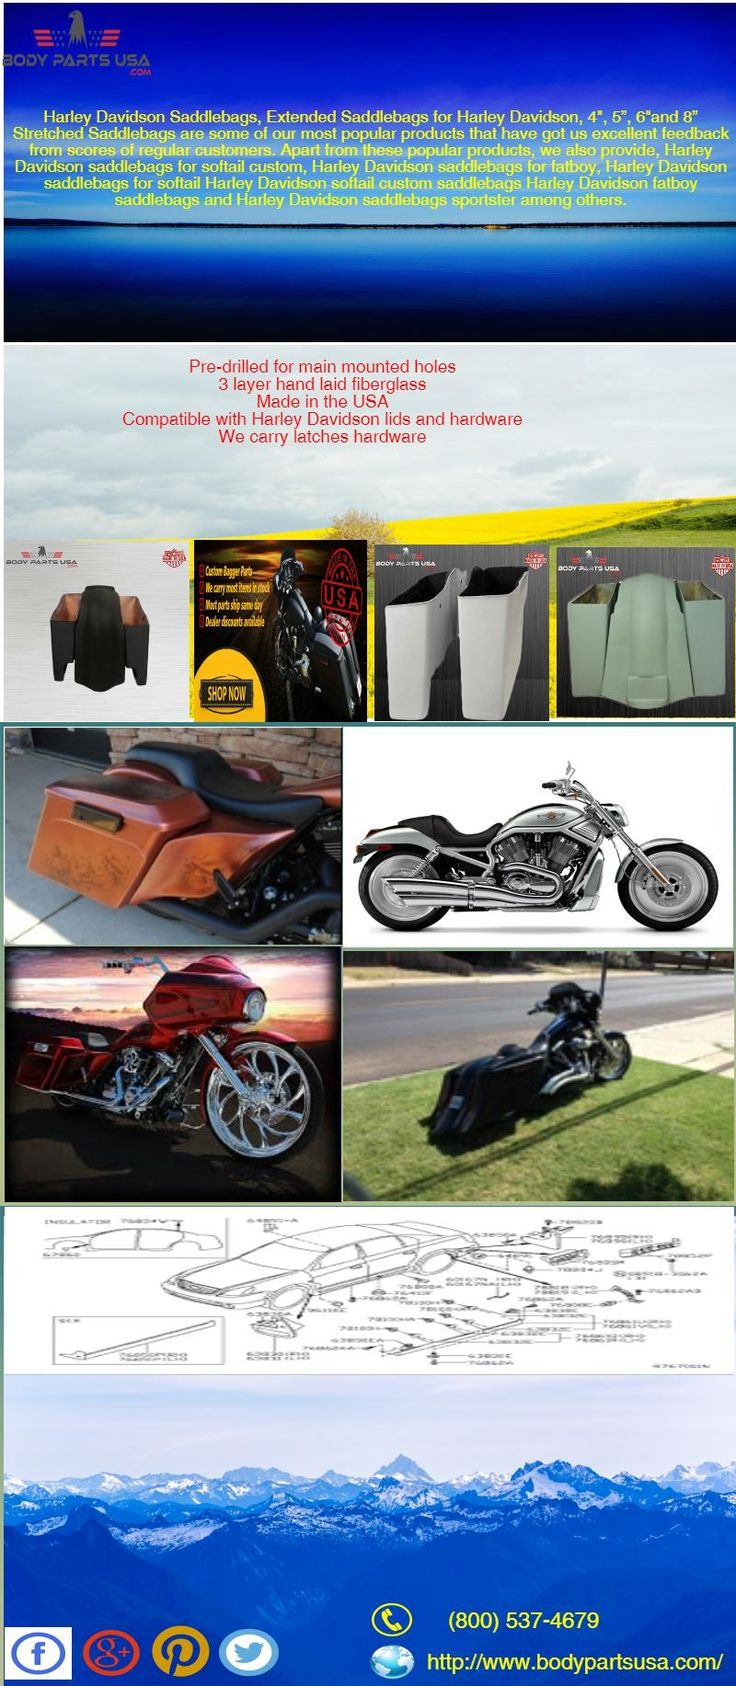 25 best custom harley parts ideas on pinterest harley davidson tires custom motorcycles and chopper motorcycle